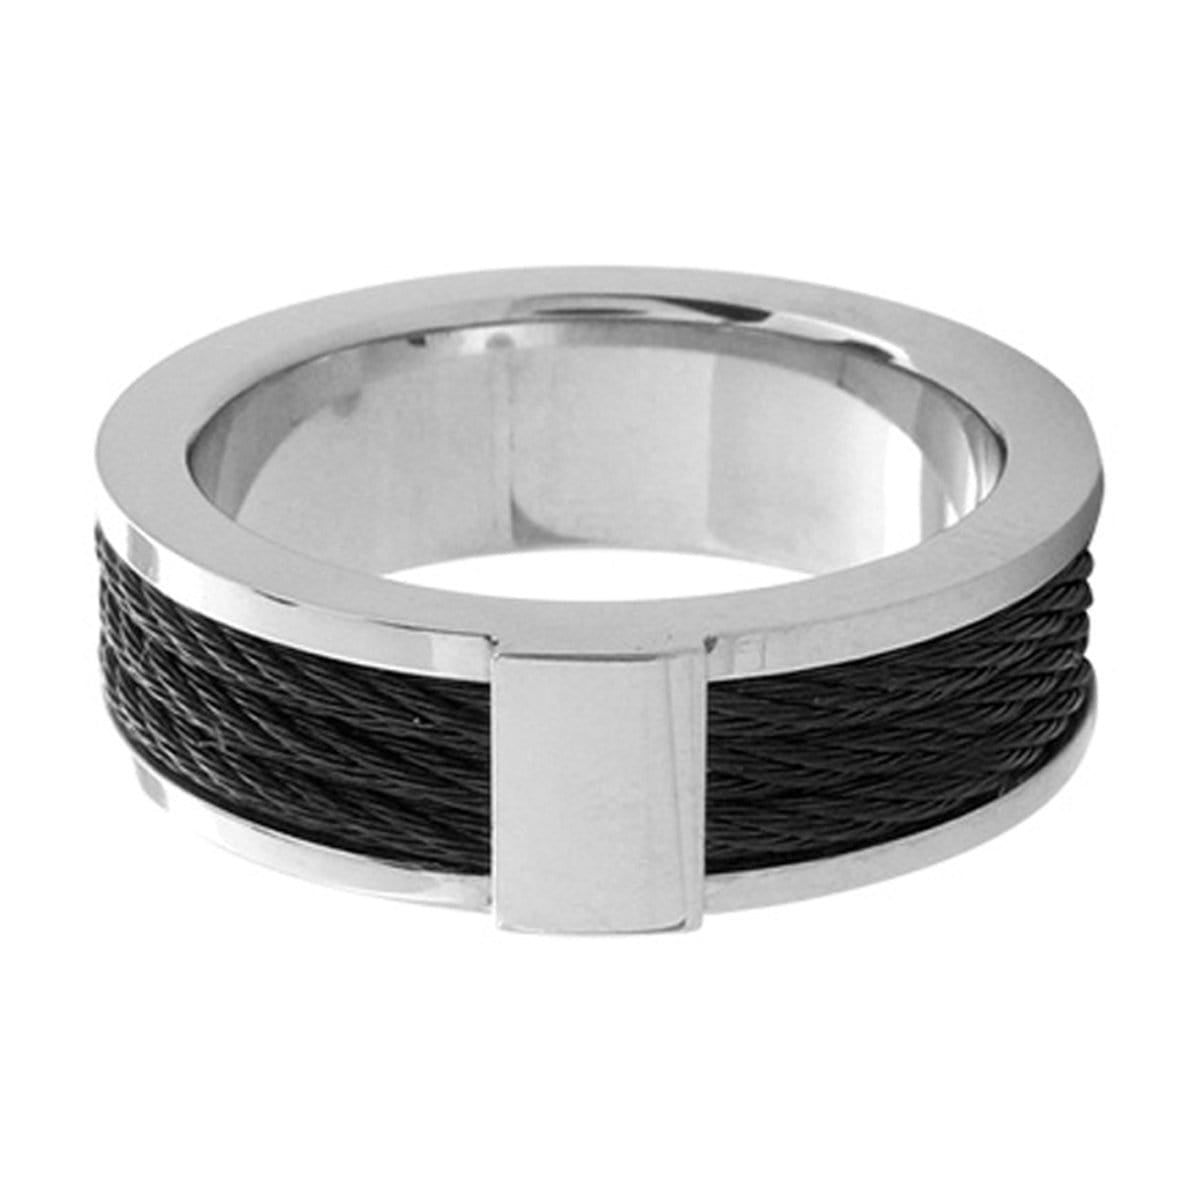 Black & Silver Stainless Steel Ring with Three Inlaid Cables - Inox Jewelry India